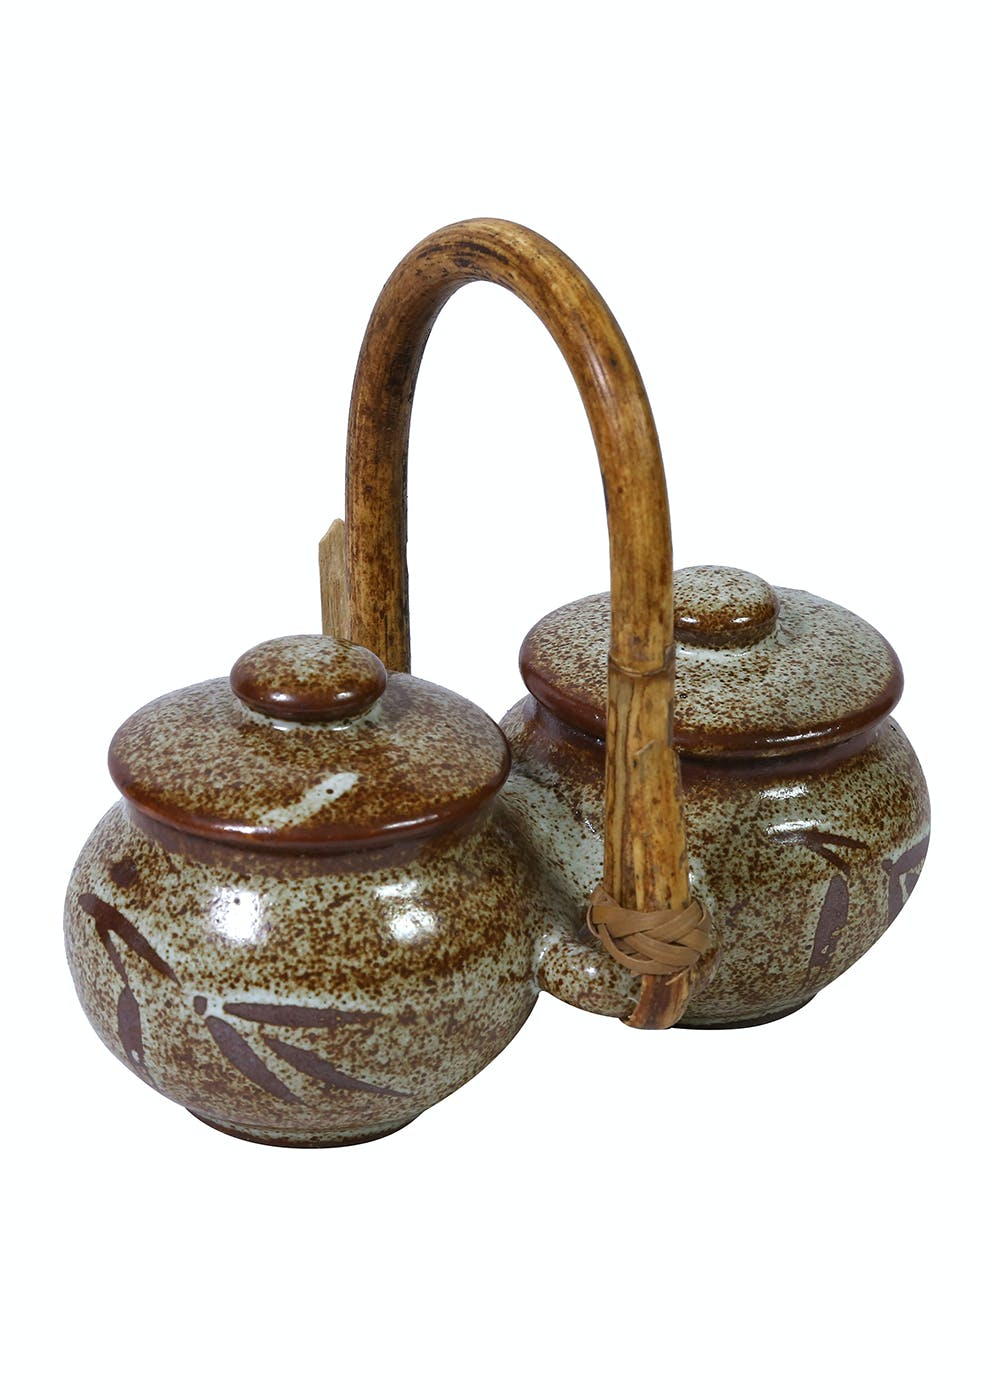 Studio Pottery Beige Pickle Set With Cane Handle From Pondicherry